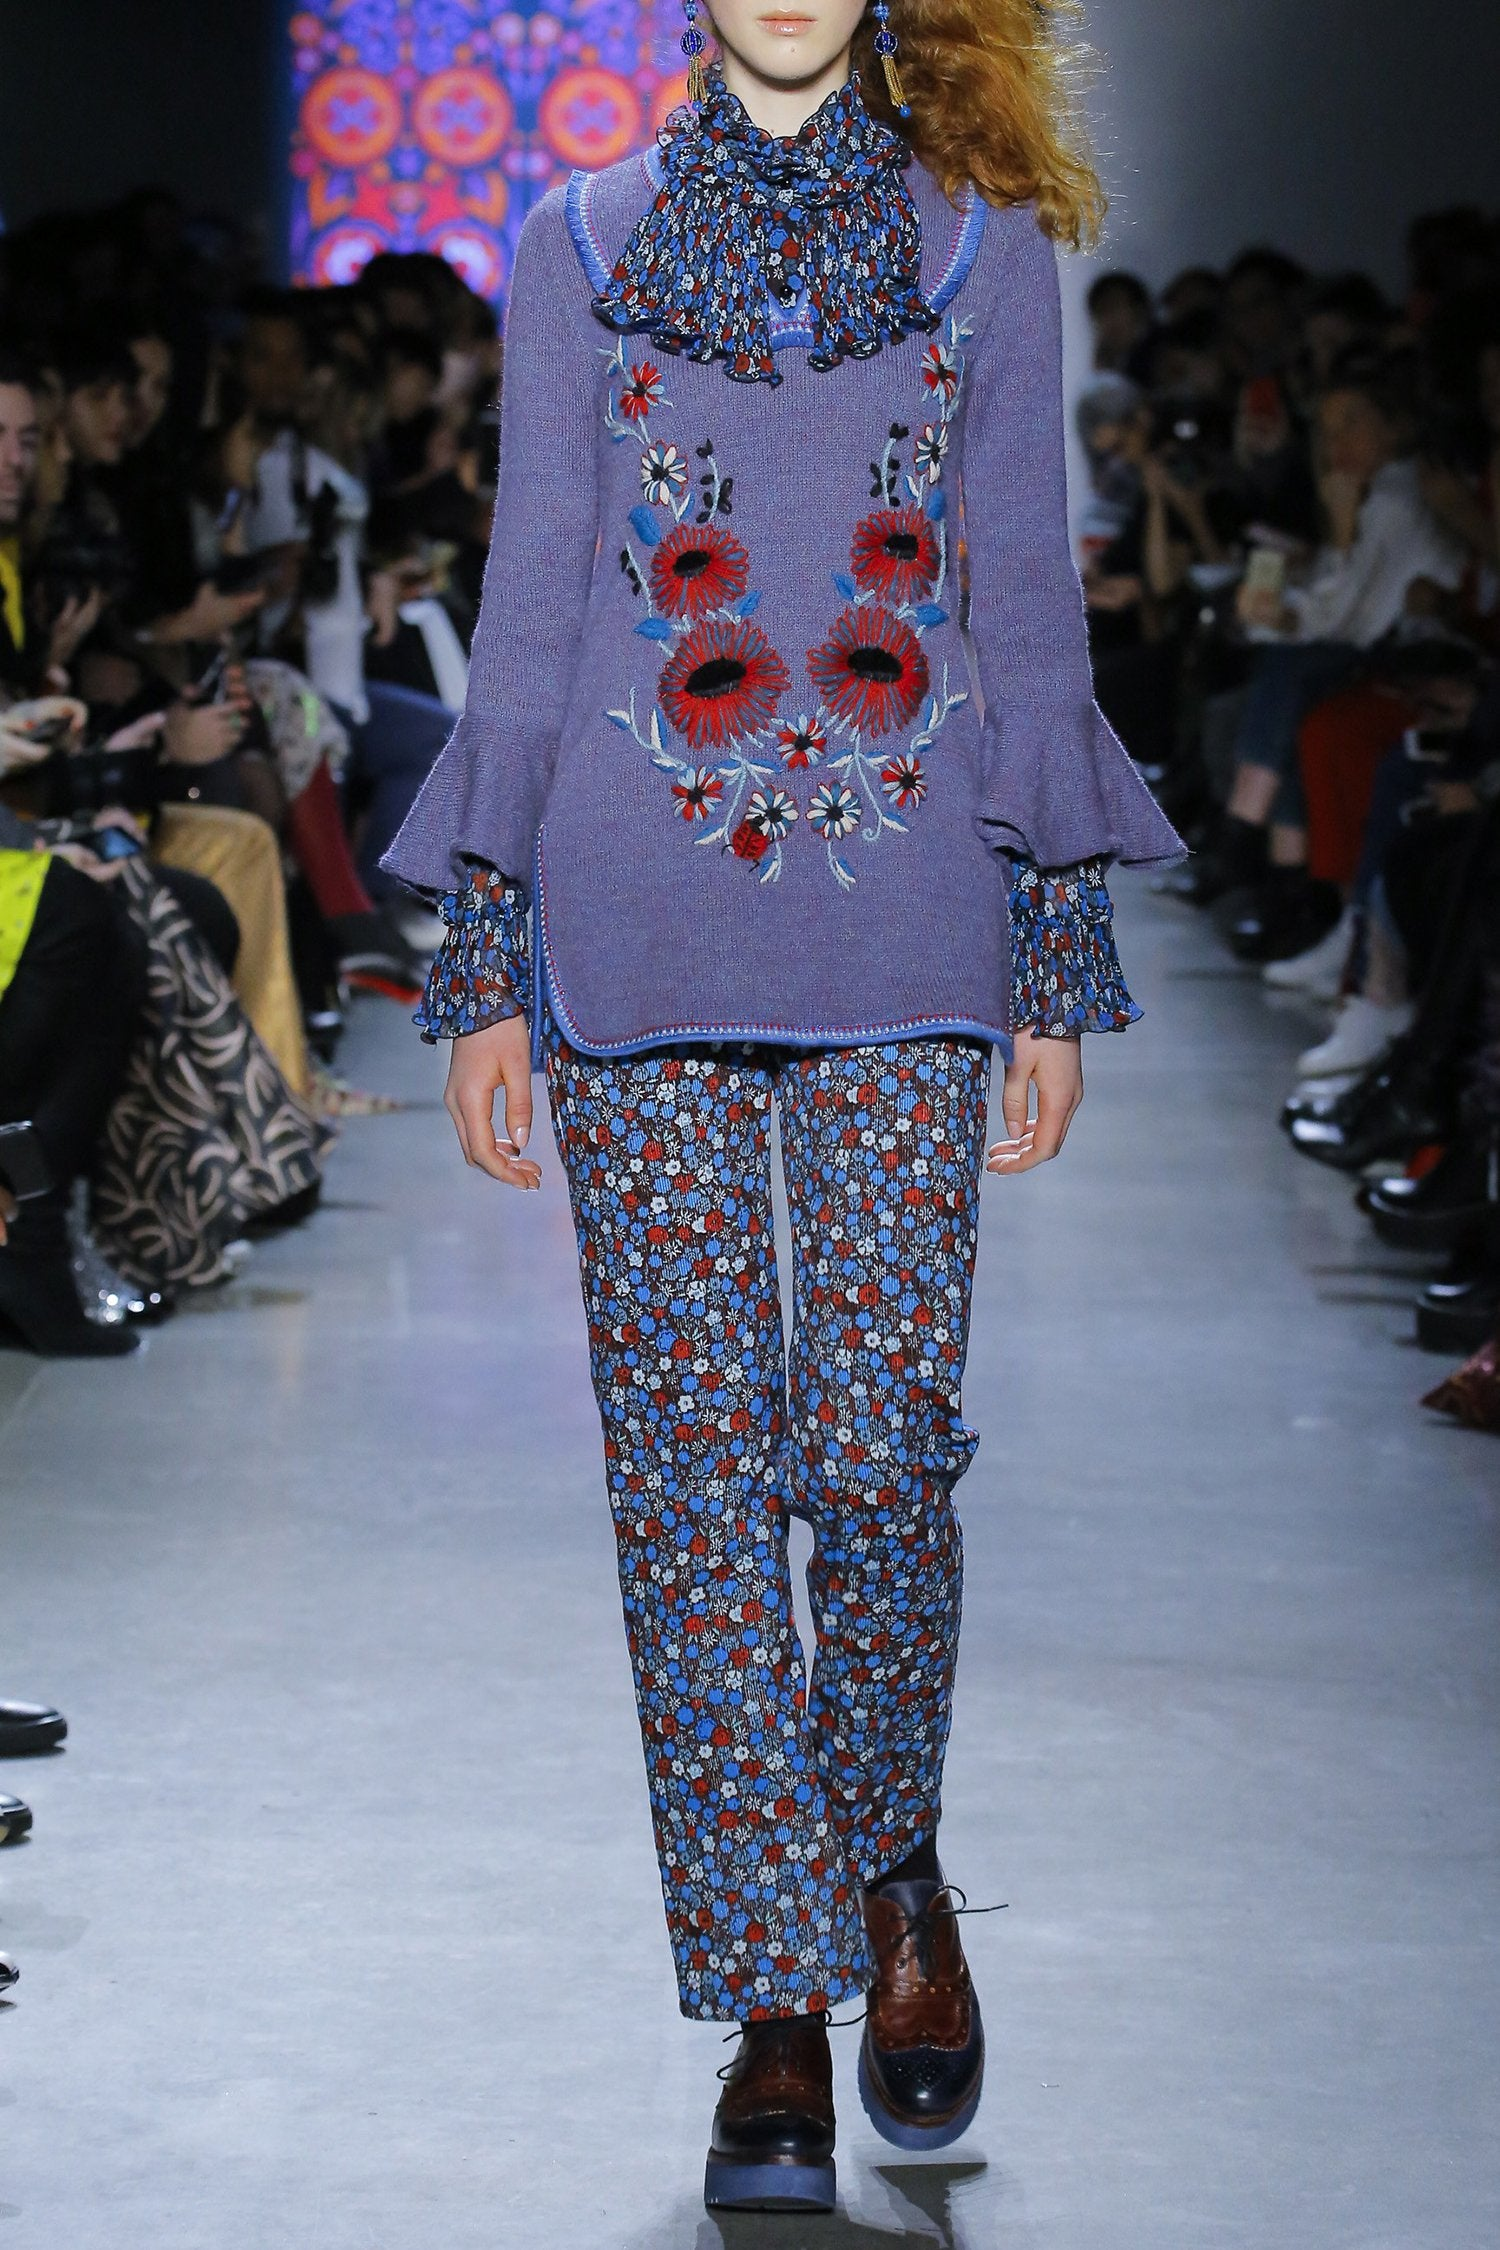 James Coviello for Anna Sui <br>Floral Embroidery Knit Tunic</br>